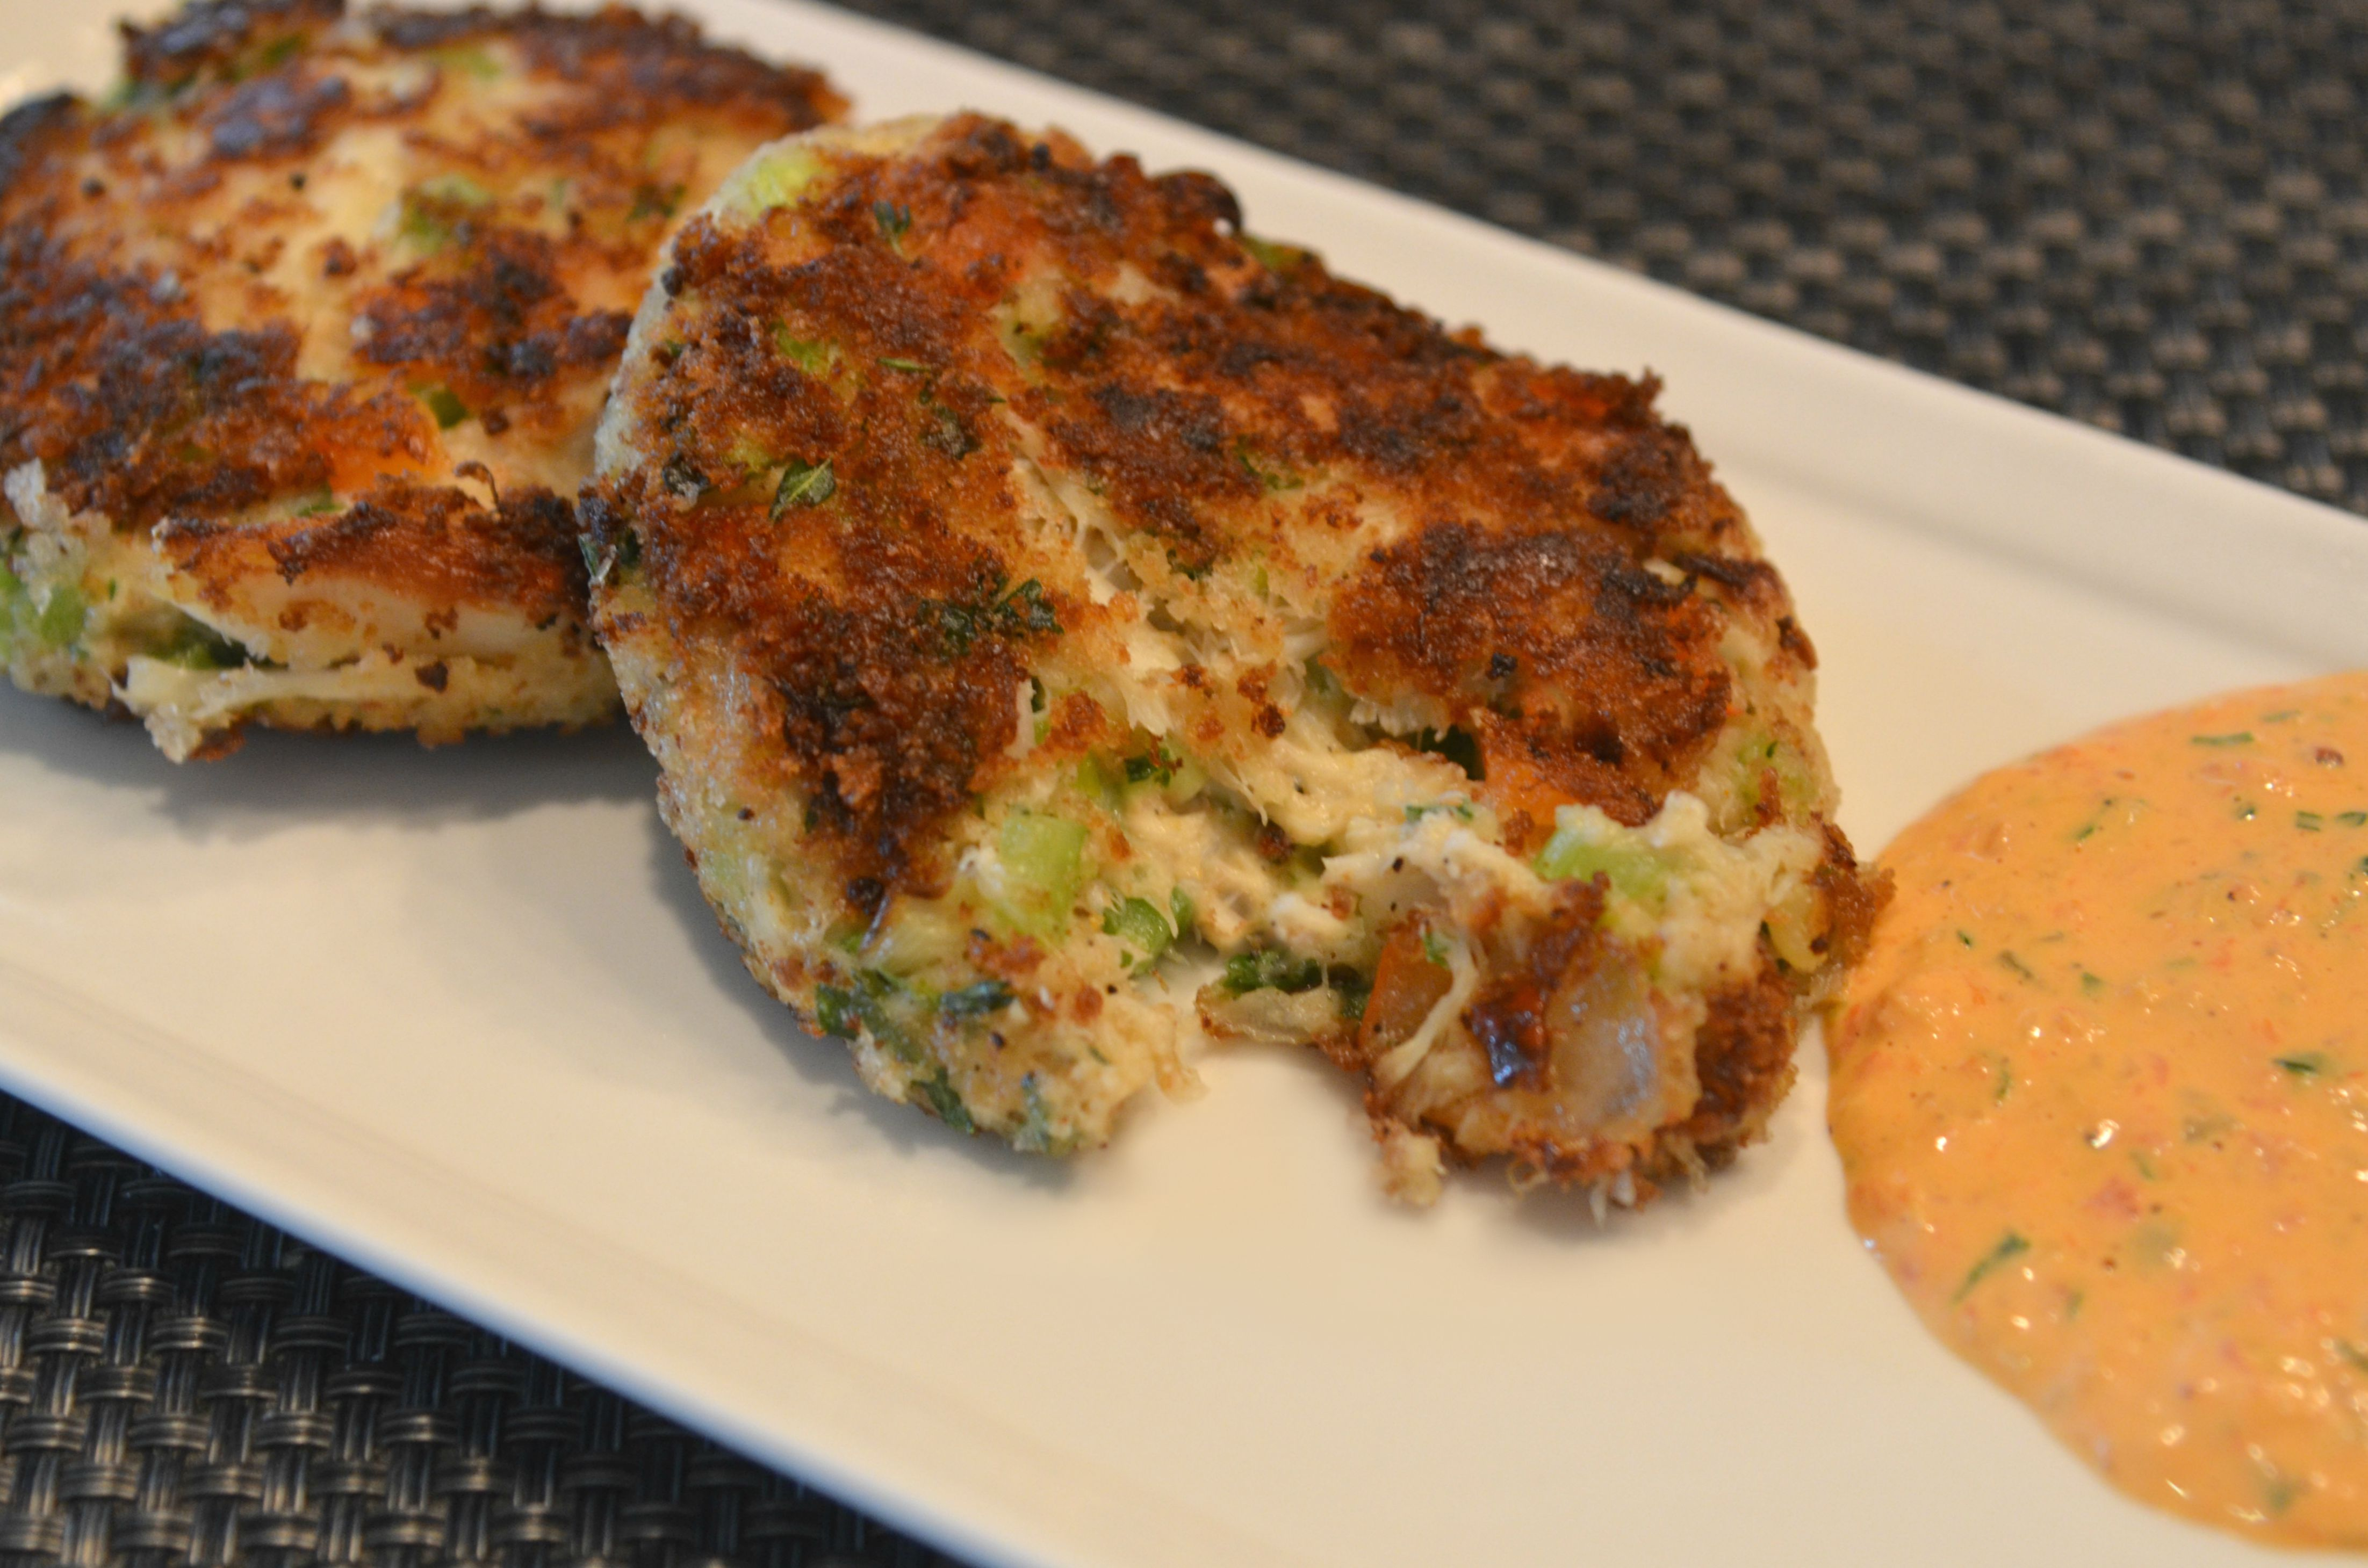 Roasted Red Bell Pepper Sauce For Crab Cakes